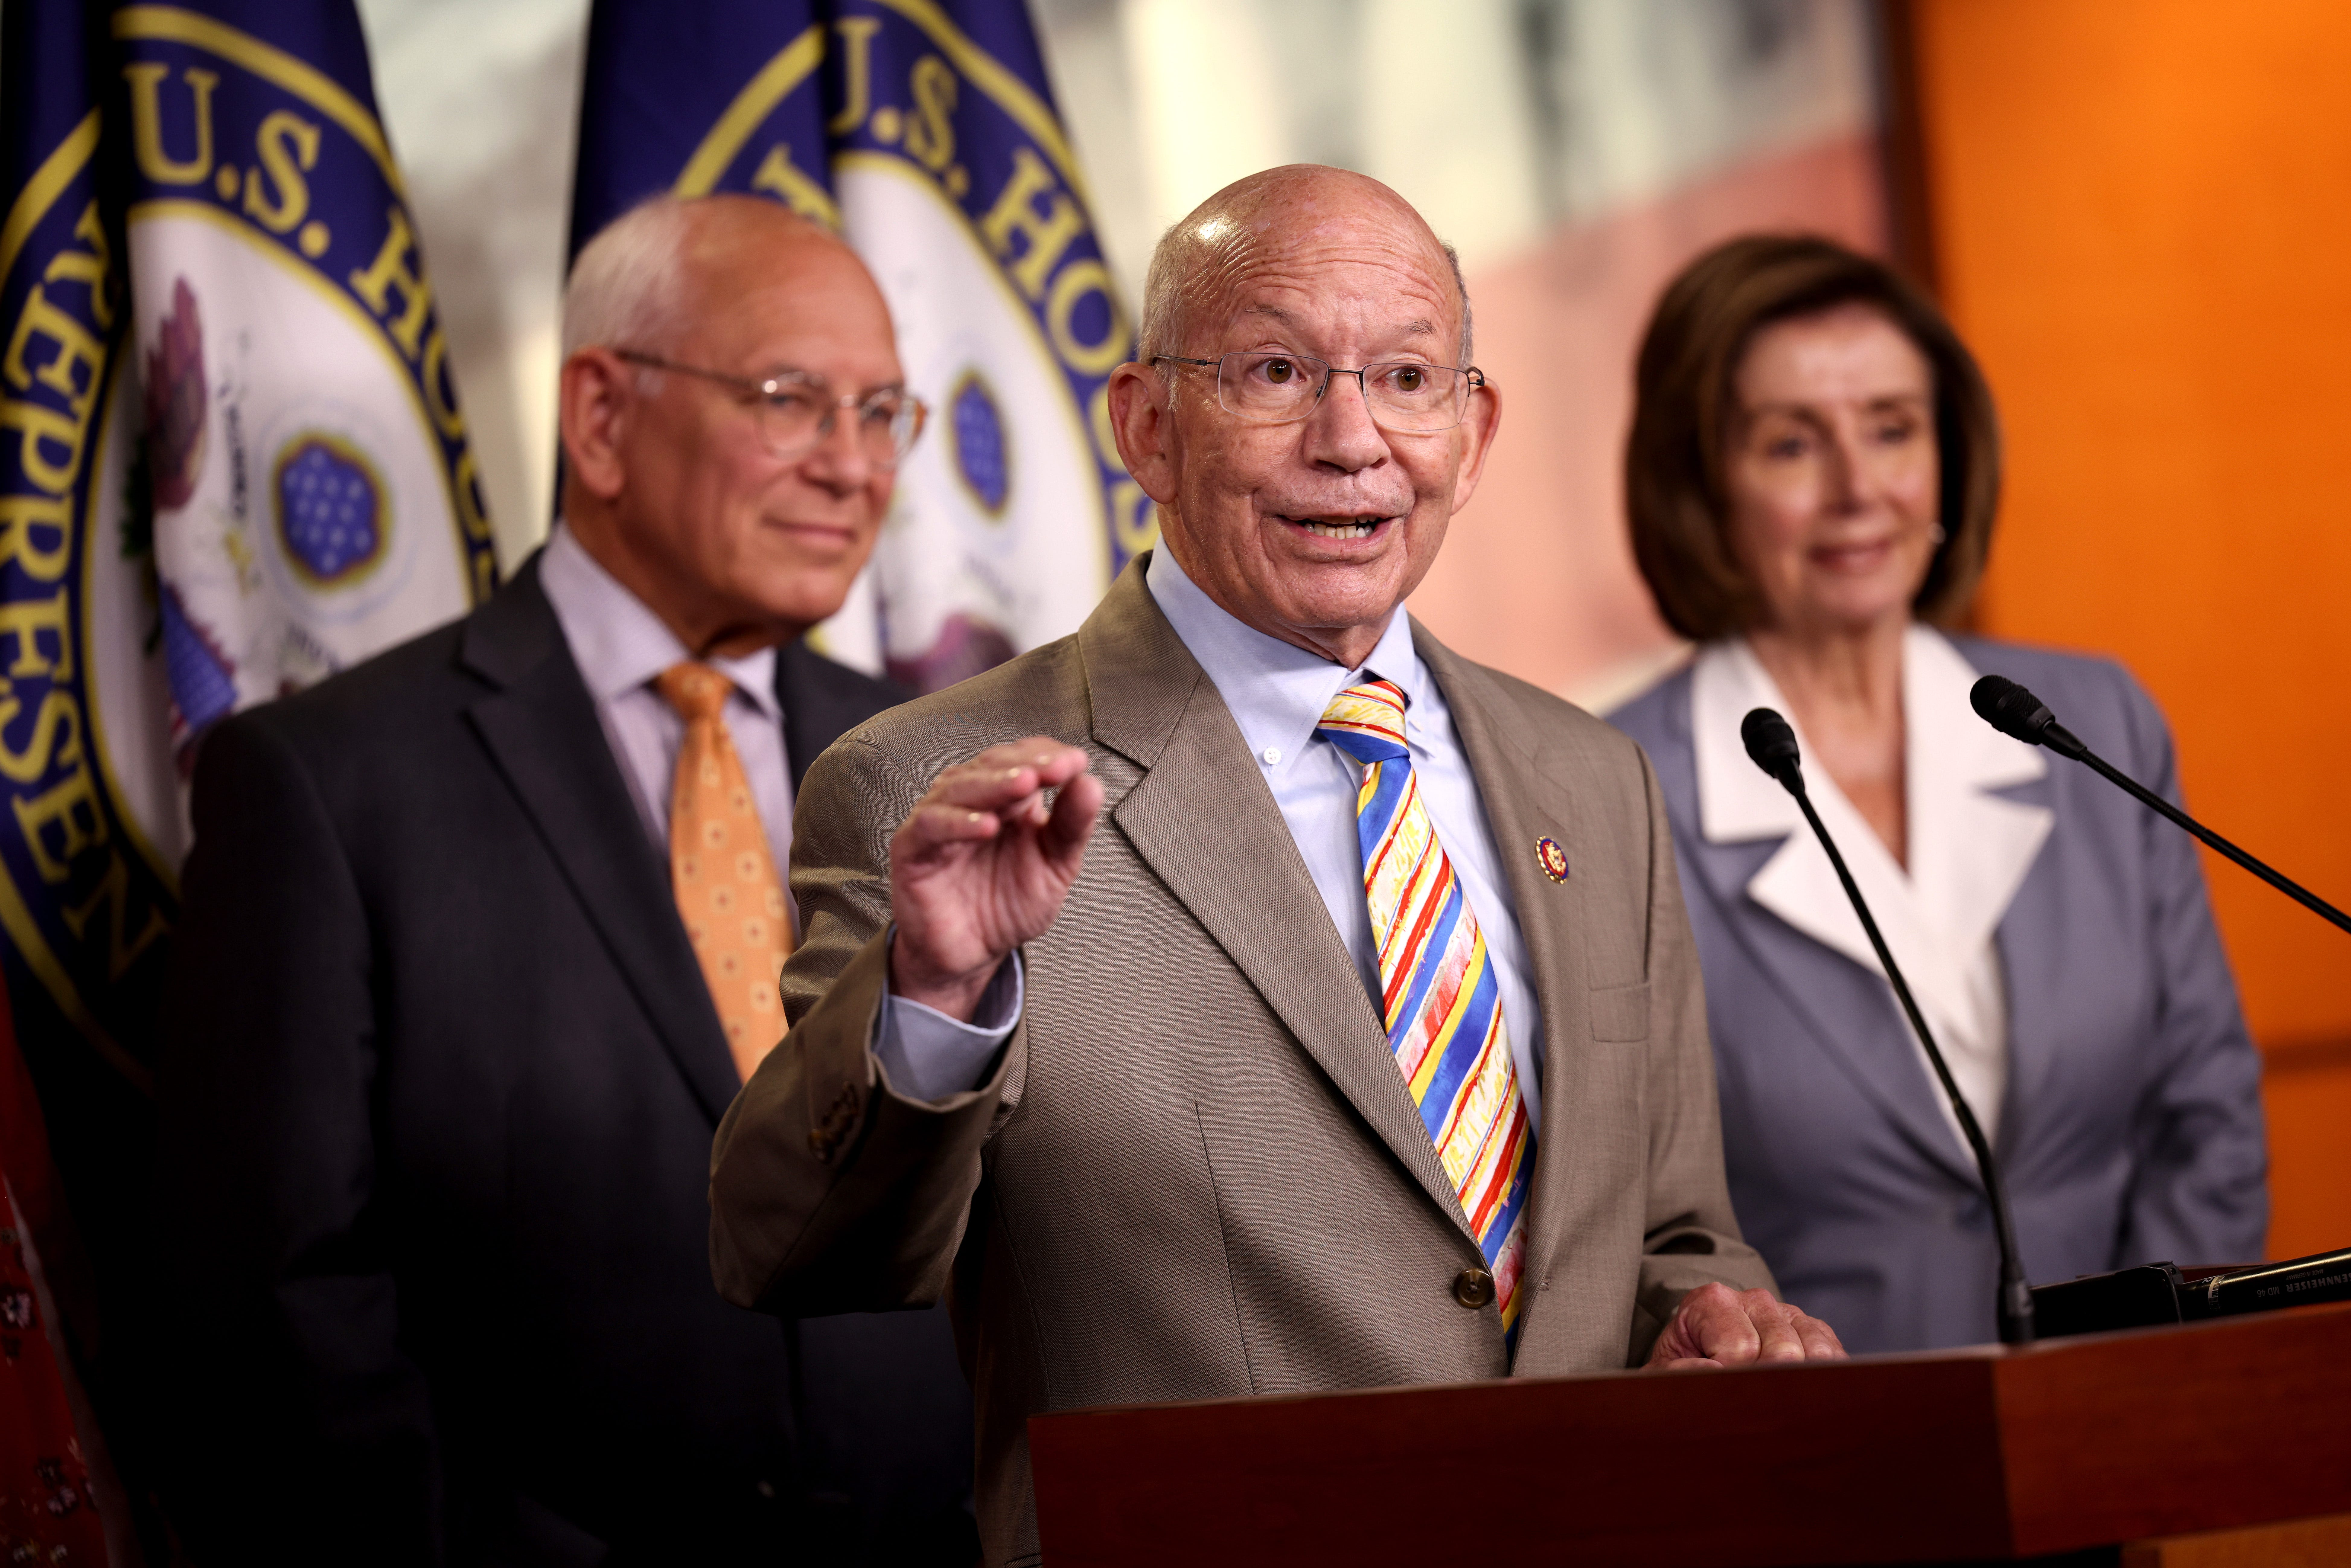 Rep. Peter DeFazio, D-Ore., speaks alongside Rep. Paul Tonko, D-N.Y., and Speaker of the House Nancy Pelosi, D-Calif., at a press conference on the INVEST in America Act on June 30 in Washington, DC.